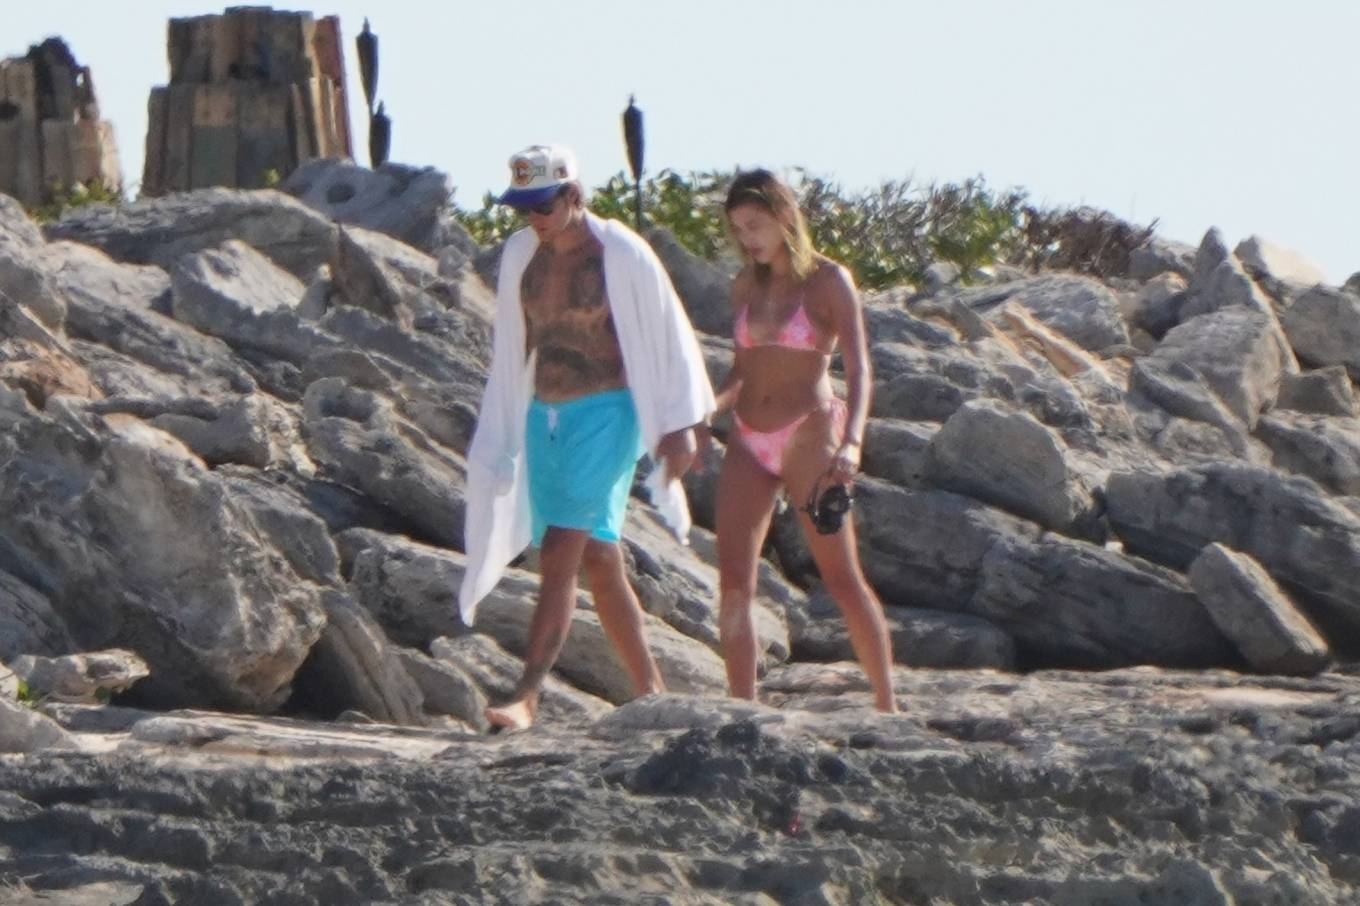 Hailey Baldwin, velvet, TRIANGL bikini top, straps tied at the shoulder, plunging neck, skimpy, floral, tiny, tie back, sexy. Hailey Baldwin wearing a plunging velvet bikini top with tie back, floral print and two ties at the shoulder